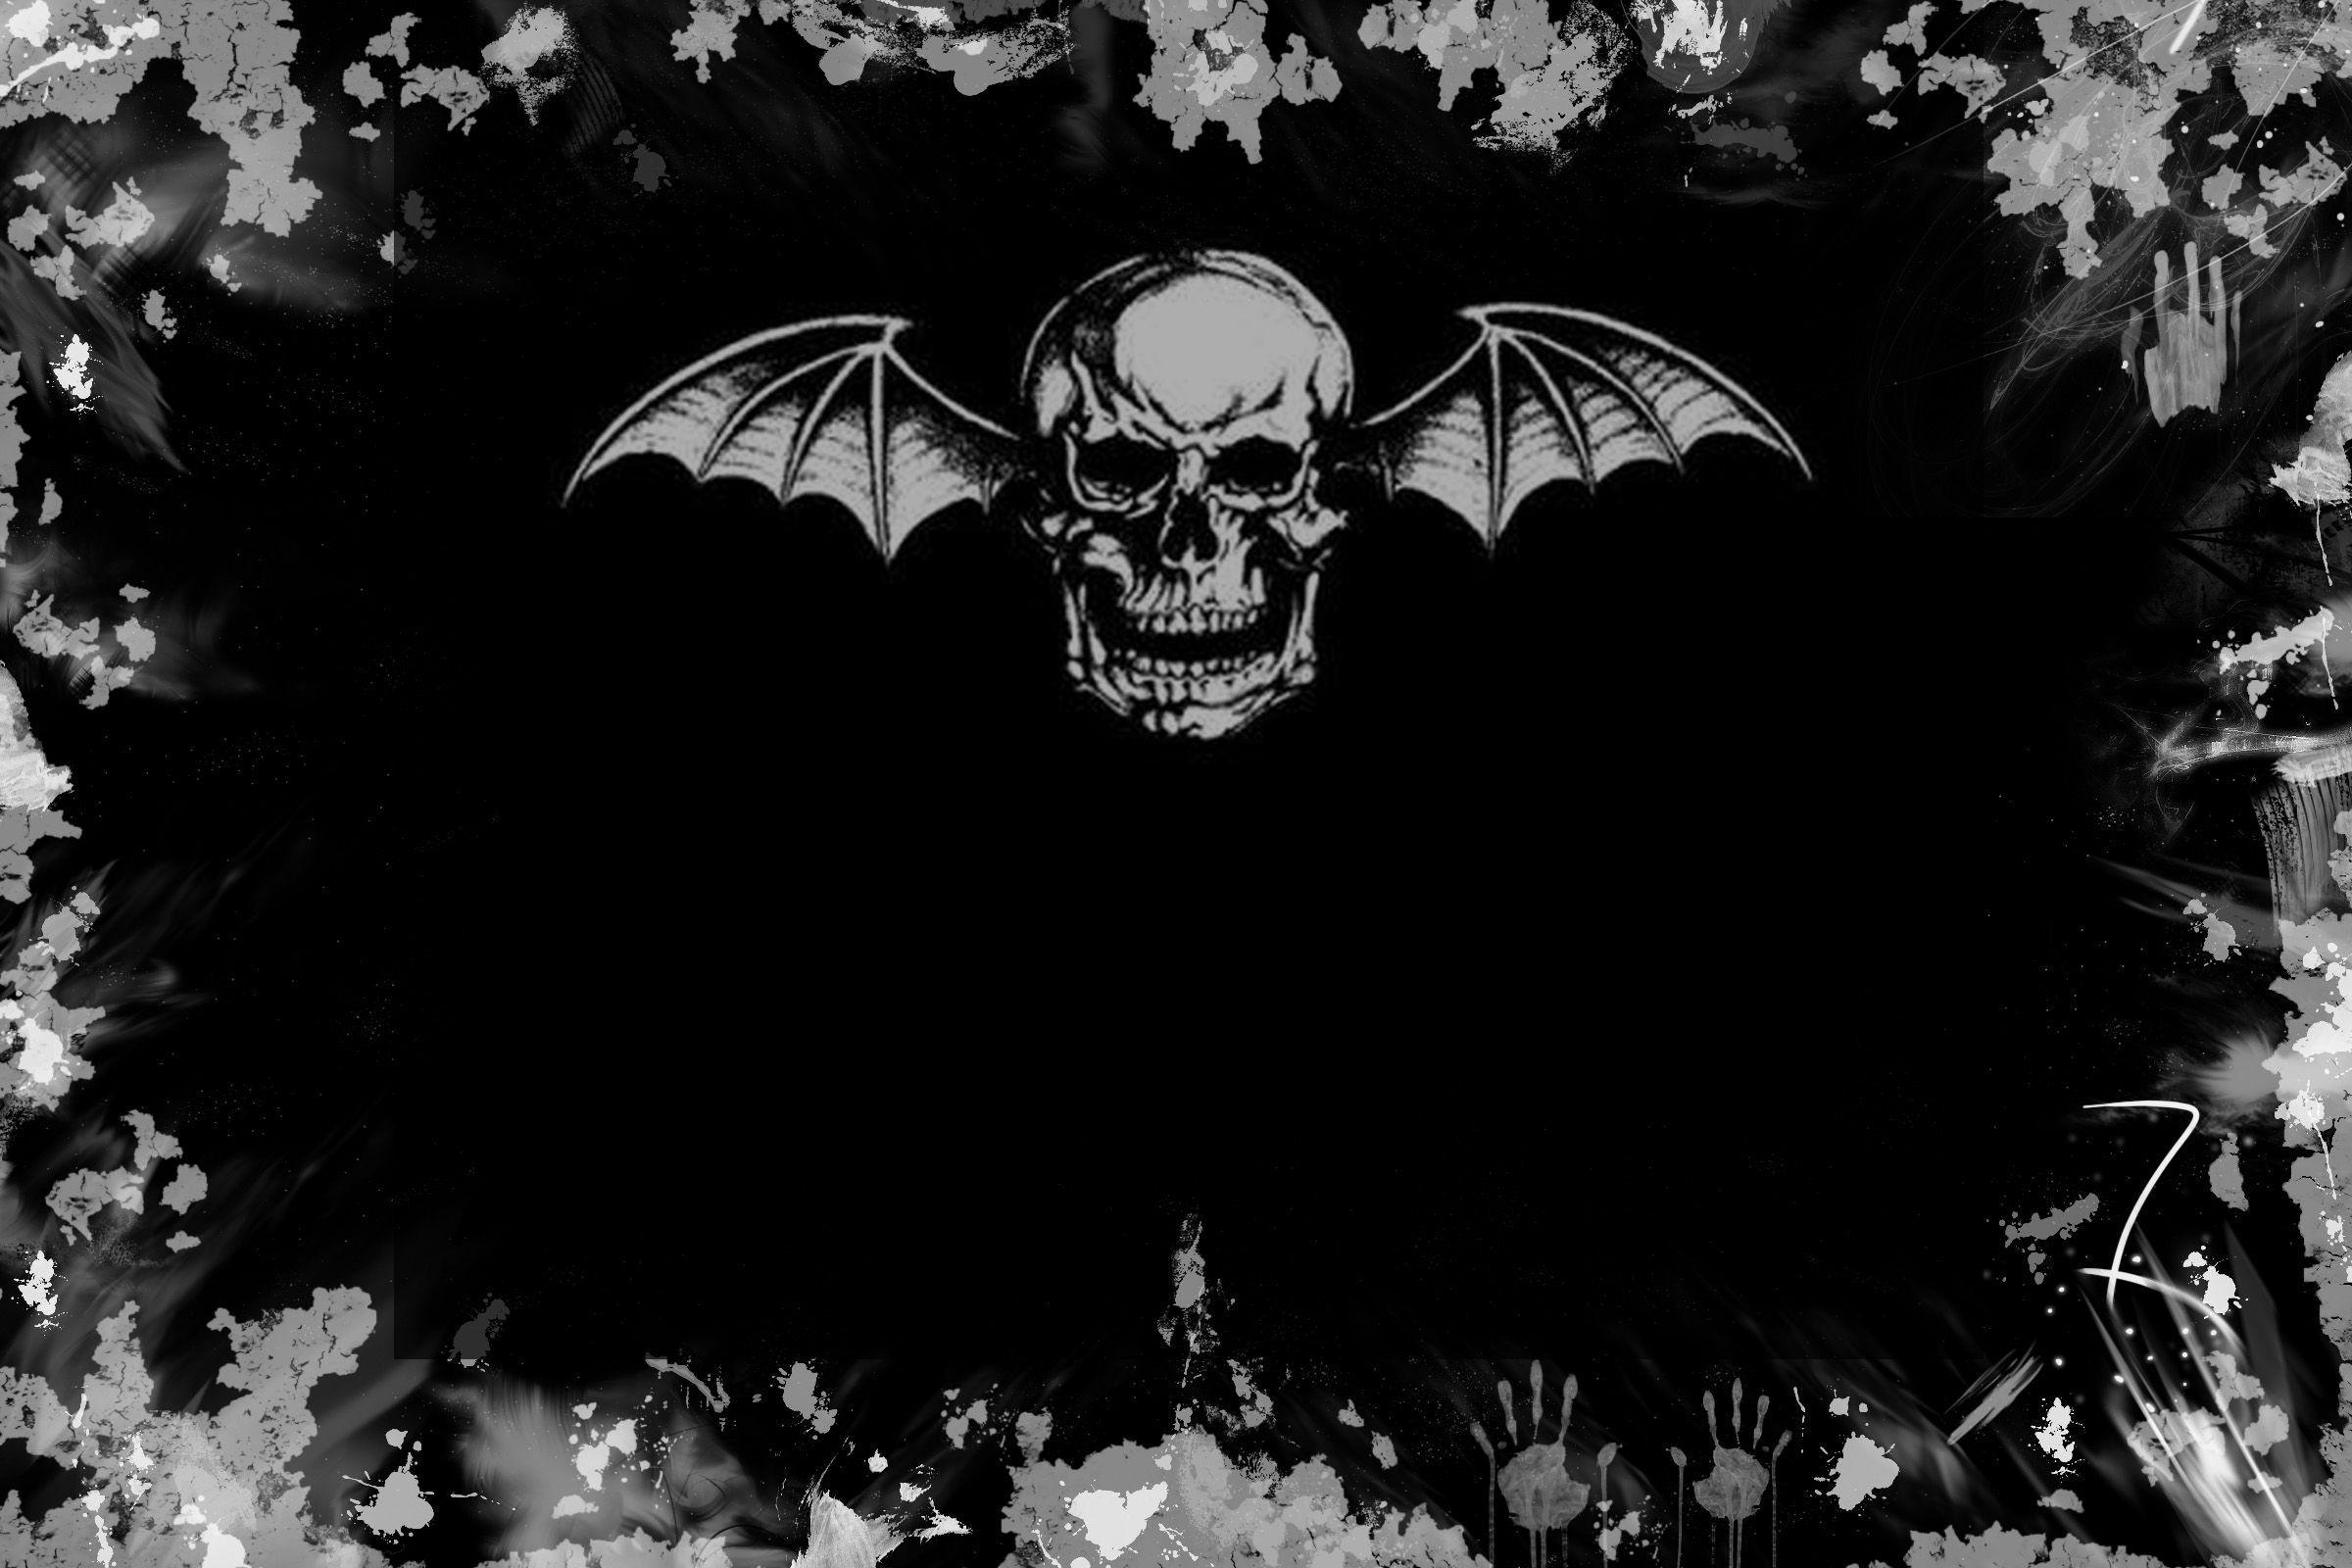 Avenged sevenfold hd wallpapers wallpaper cave avenged sevenfold hd wide wallpaper 26670 wallpaper risewall download voltagebd Choice Image